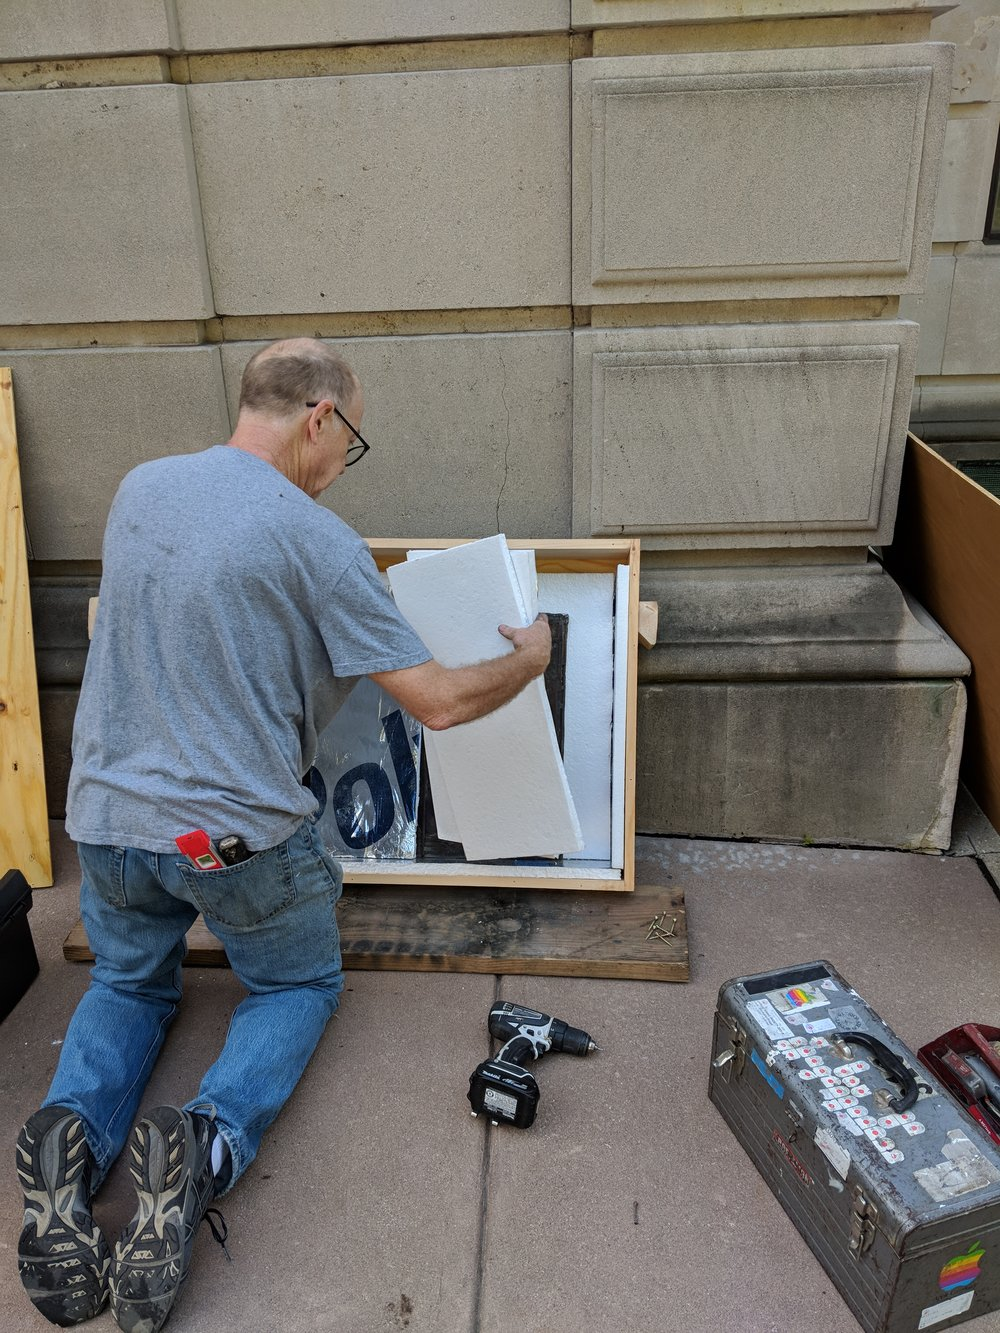 Removed windows are carefully transported to the studio, and a temporary filler is installed into the window frame.